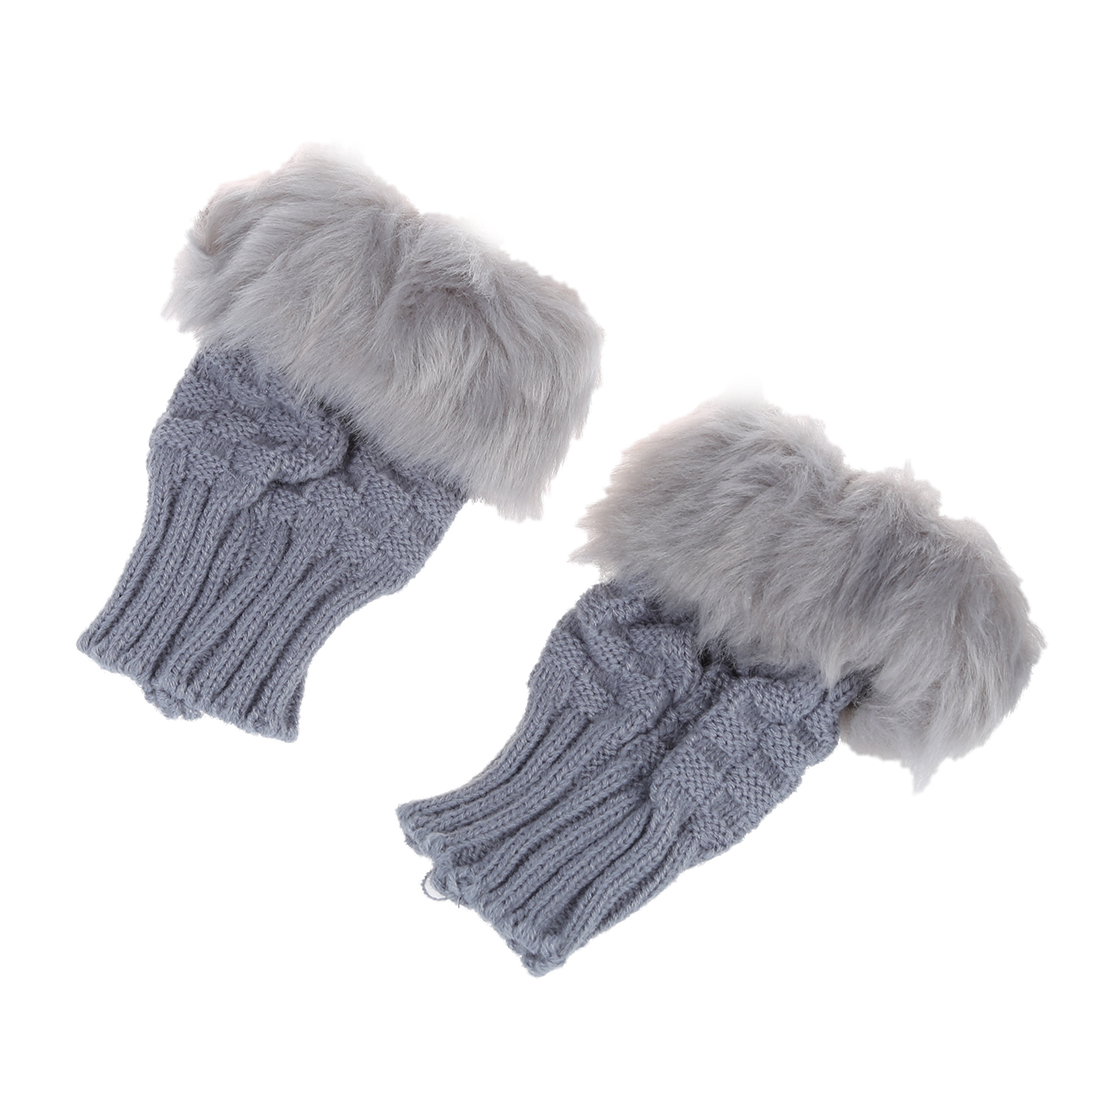 Fashion Women's Wrist Warmer Winter Fingerless Gloves light Grey,White